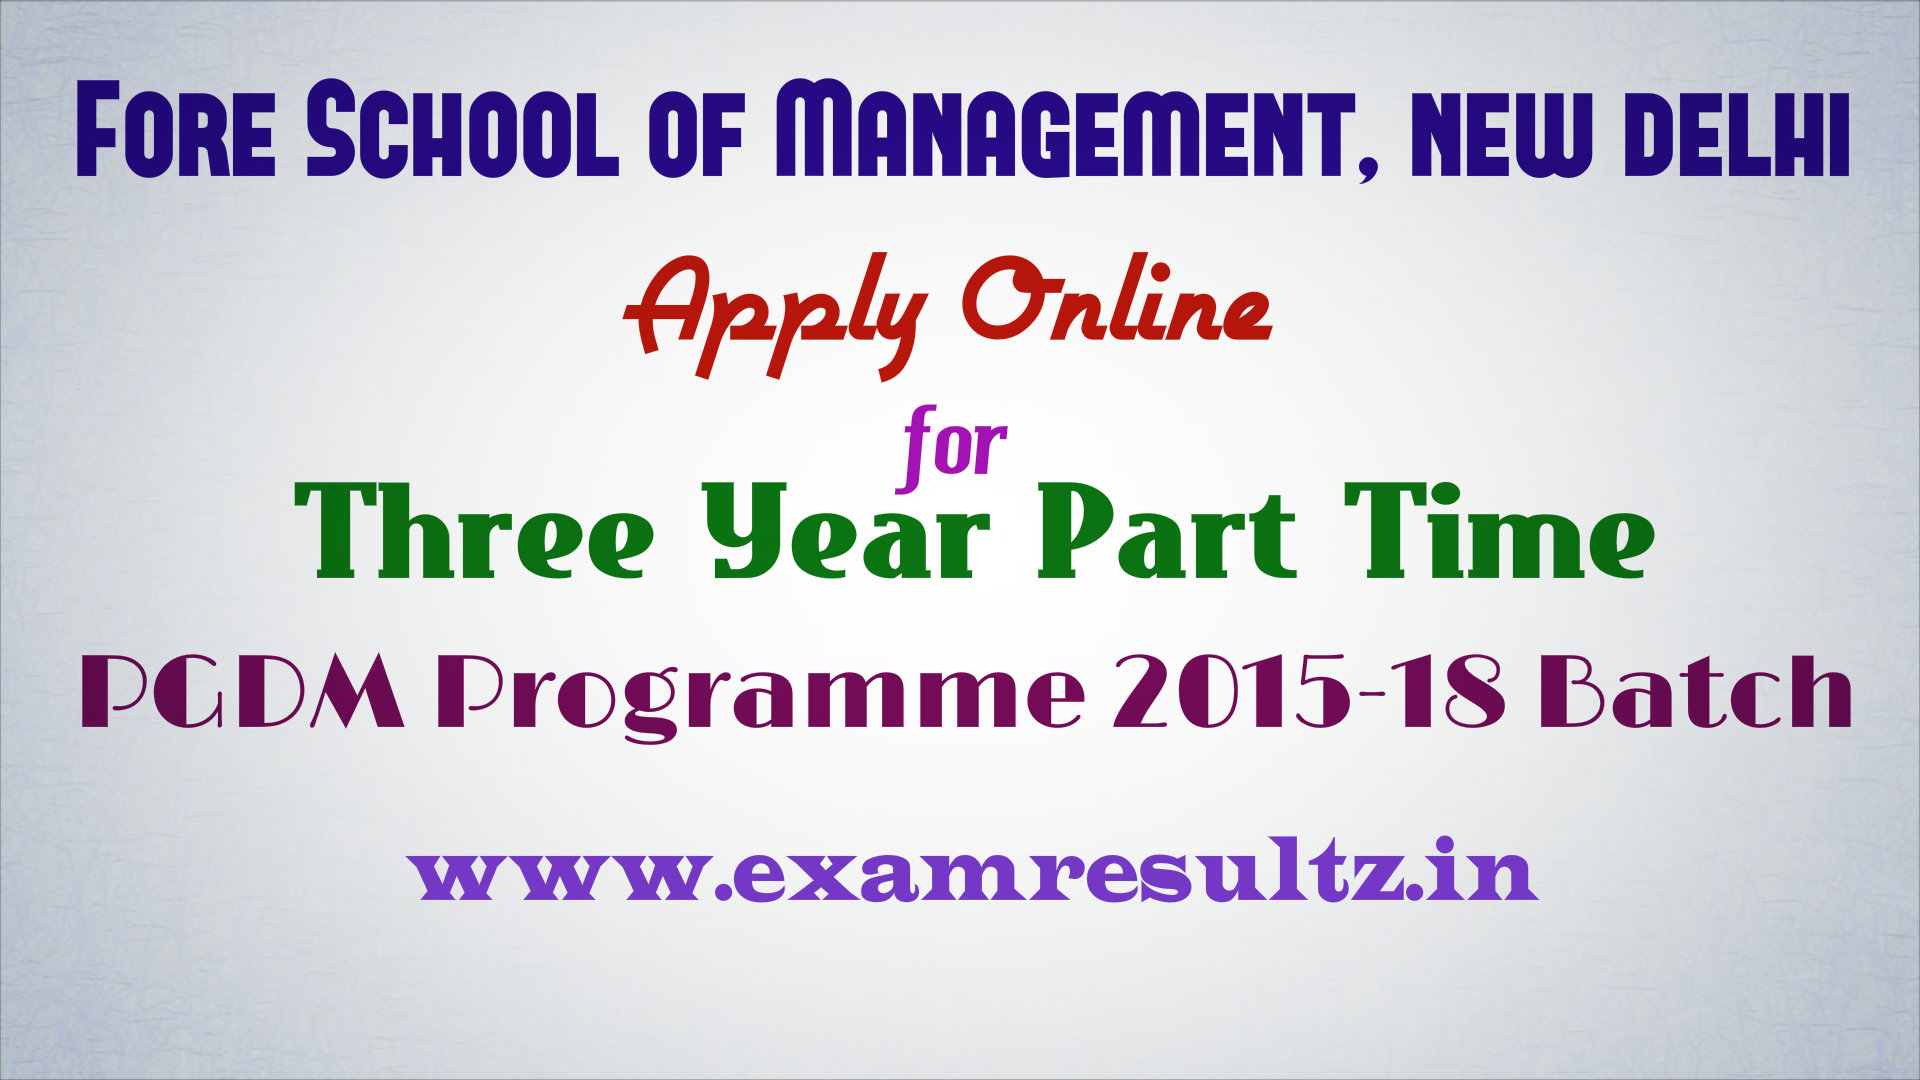 Fore school of management three year part time pgdm admission 2015-18 batch